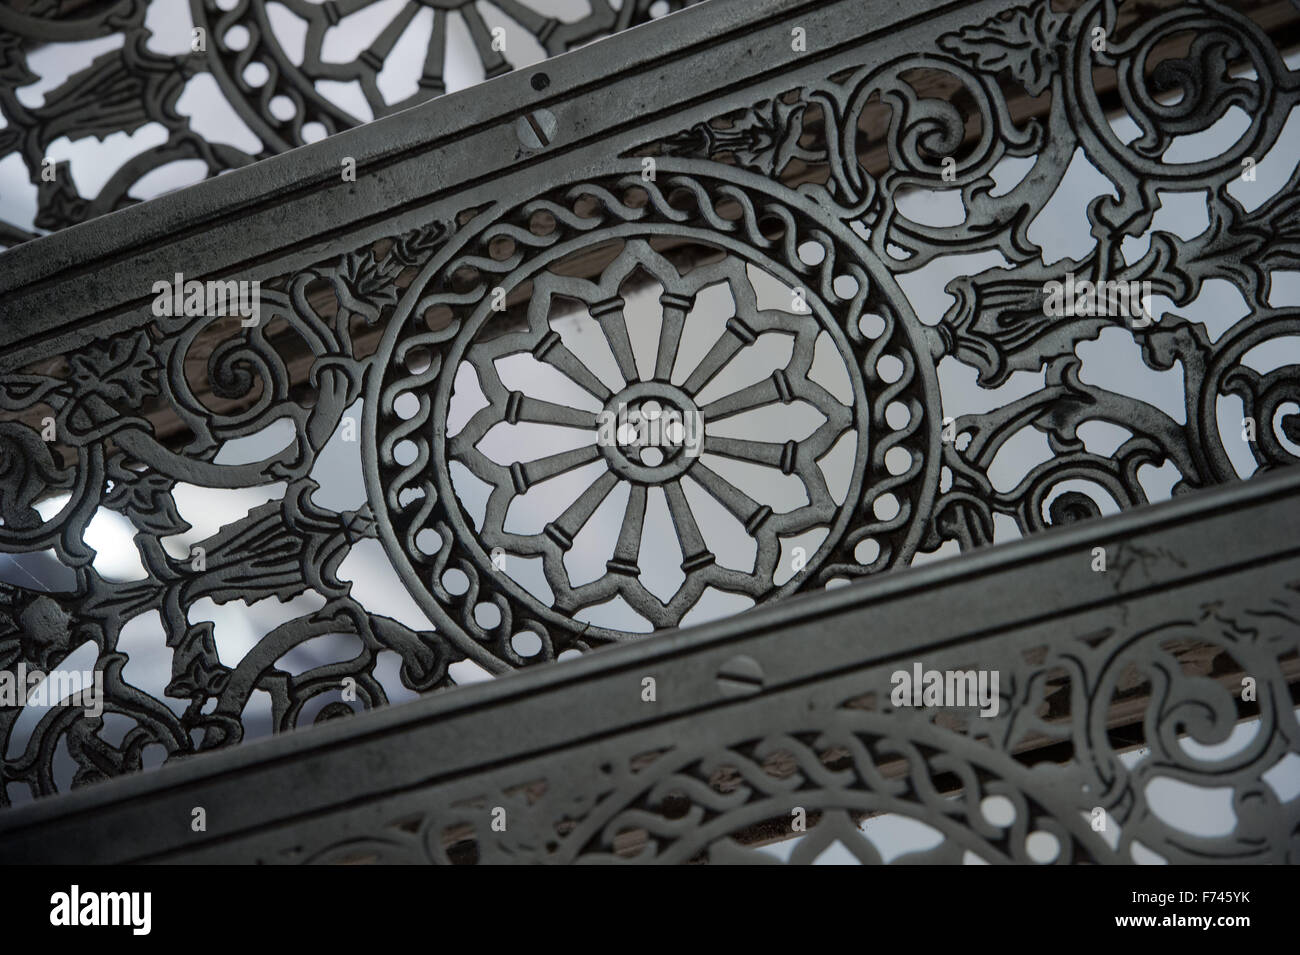 Details Of The Cast Iron Steps On The Circular Staircase In The Tower Of  The Granitz Hunting Lodge Near Binz, Germany, 23 November 2015.